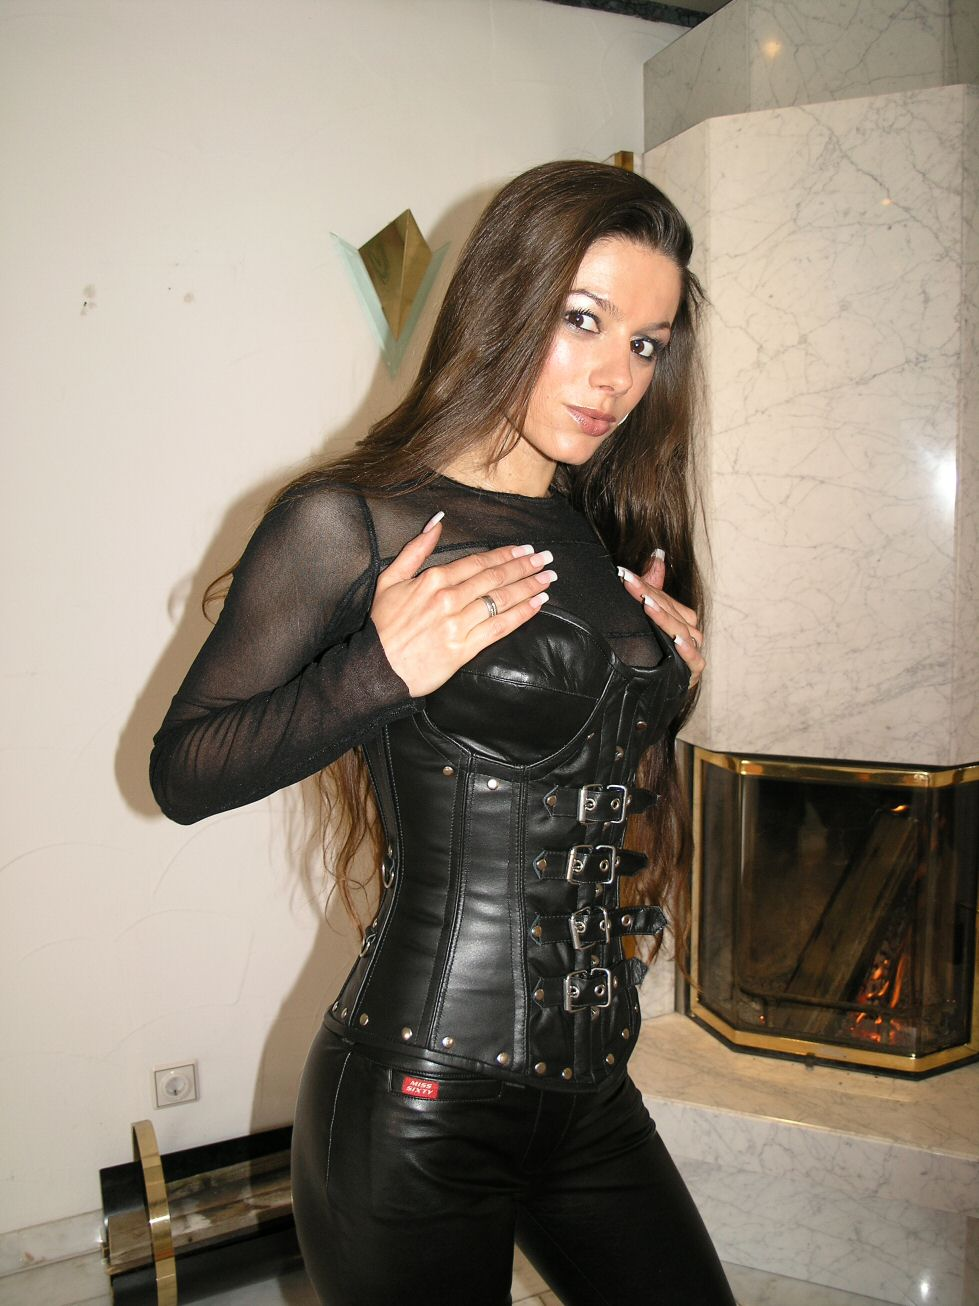 Lovely Ladies In Leather Miscellaneous Leather 16 Tight -6195